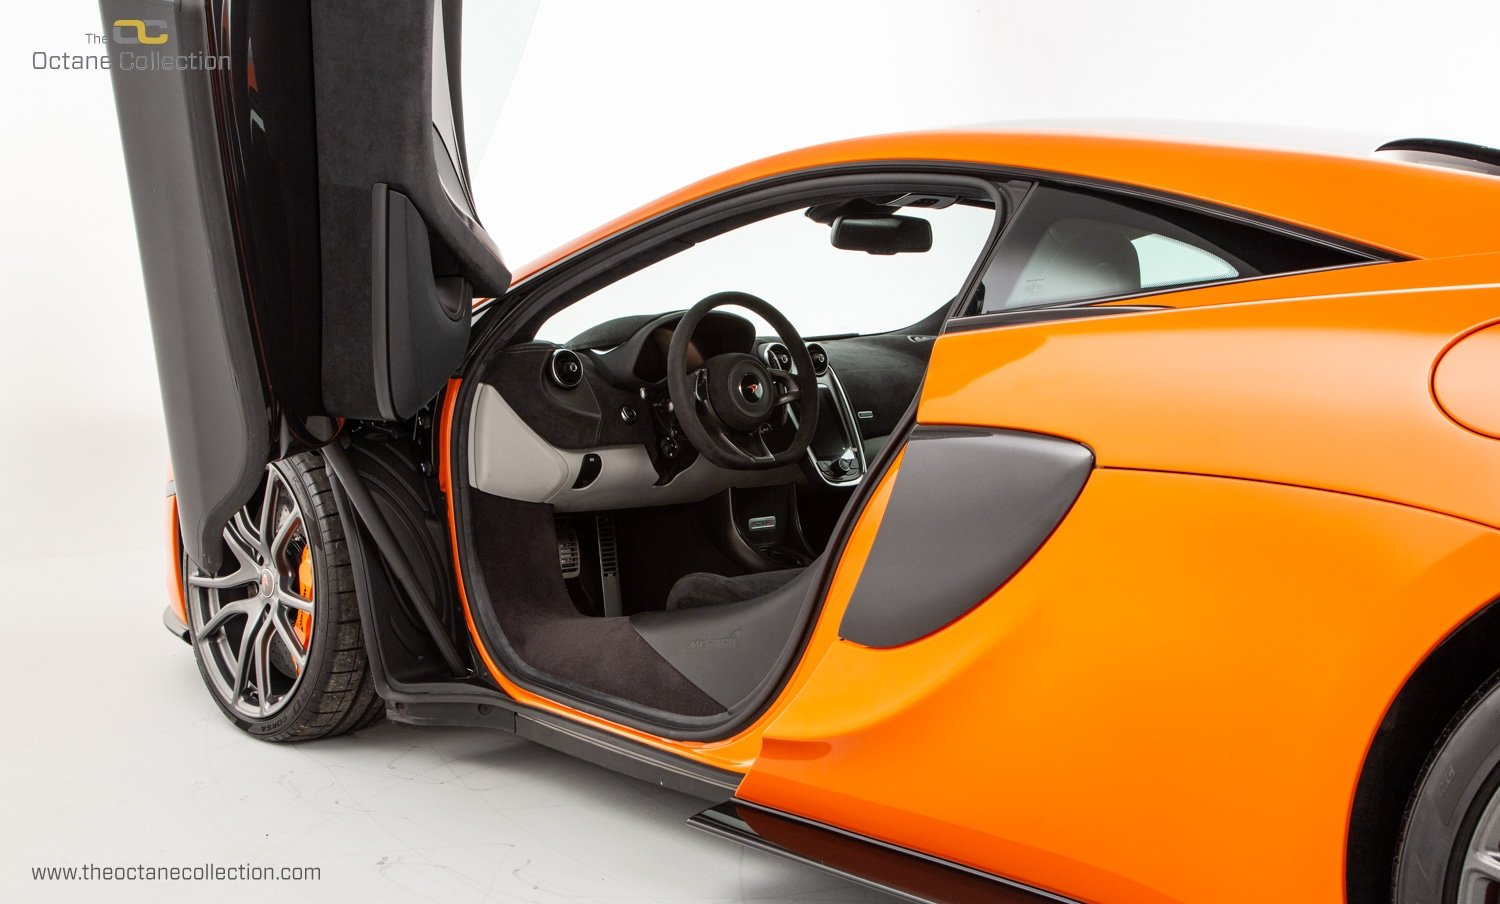 2017 MCLAREN 570S TRACK PACK // LHD // 1K MILES // VAT QUALIFYING For Sale (picture 9 of 17)